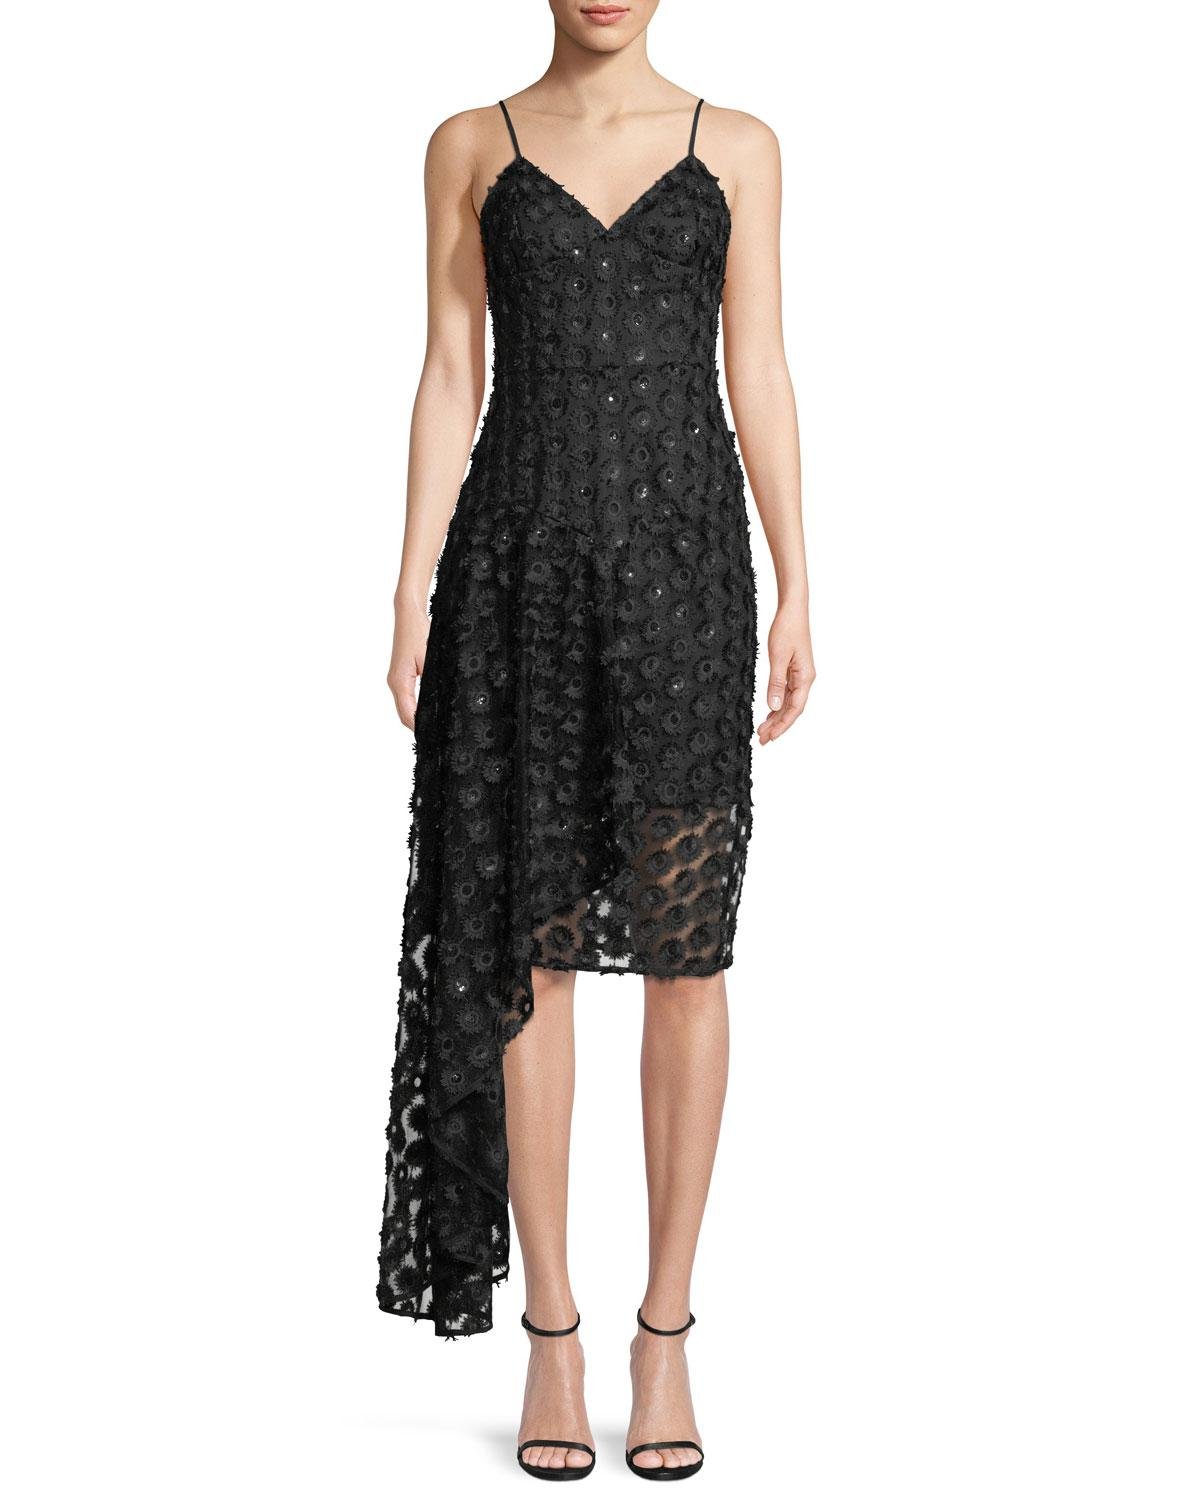 Lyst - Milly Antonia Stretch Daisy Lace Asymmetric Cocktail Dress in ...